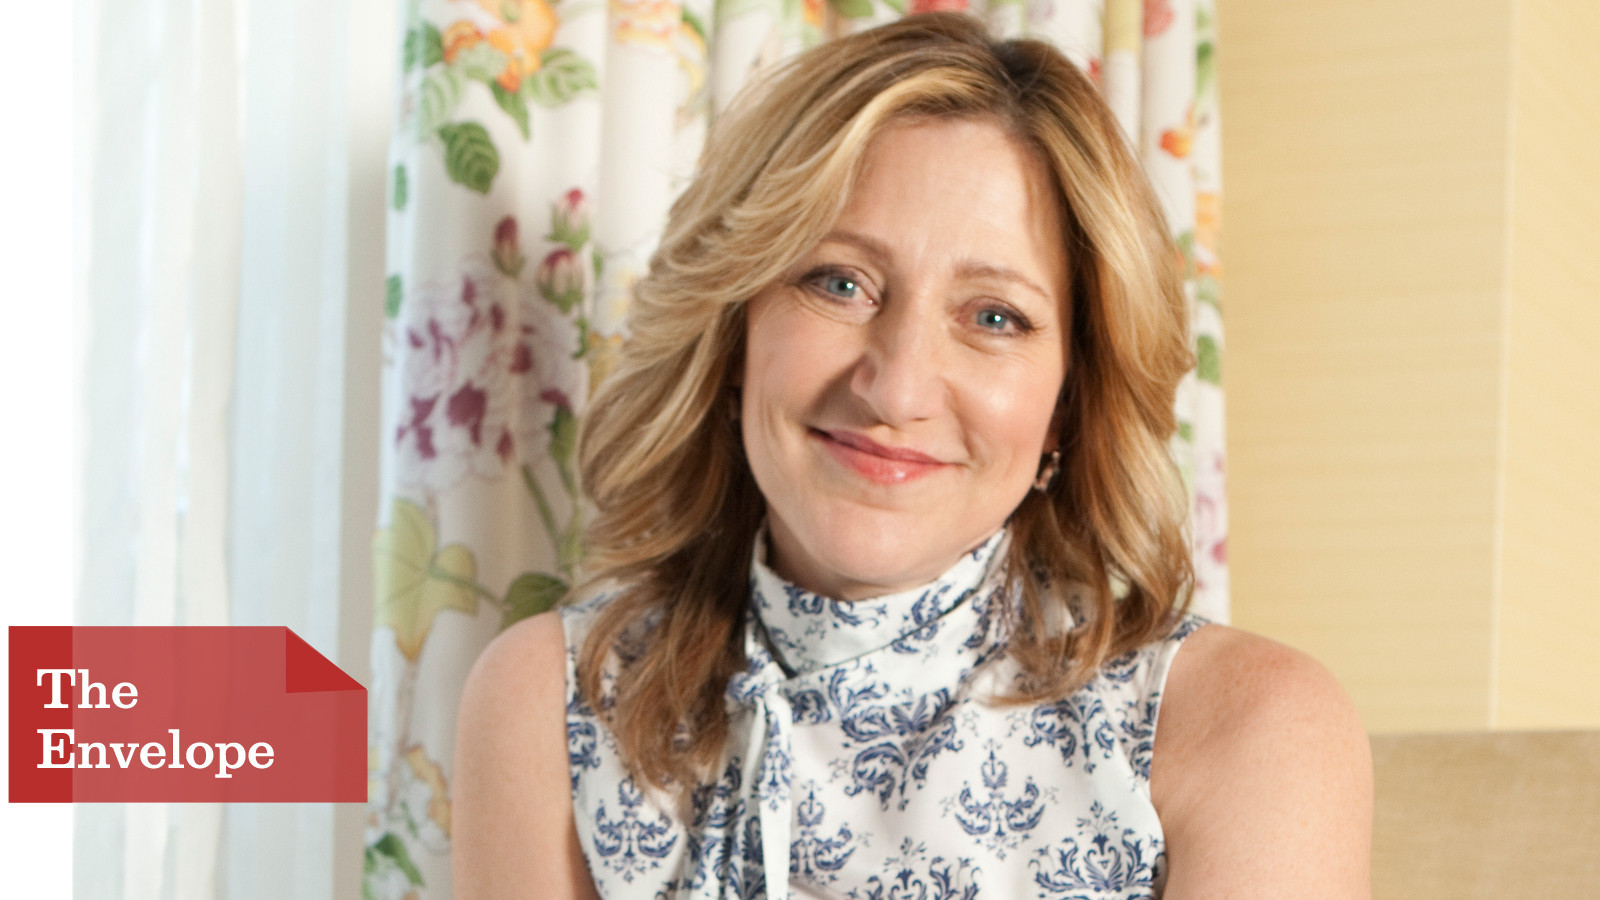 edie falco 2015edie falco emmy, edie falco instagram, edie falco 2016, edie falco wiki, edie falco net worth, edie falco apartment, edie falco, edie falco imdb, edie falco gay, edie falco orange is the new black, edie falco young, edie falco on james gandolfini, edie falco 2015, edie falco twitter, edie falco height, edie falco bio, edie falco plastic surgery 2013, edie falco married